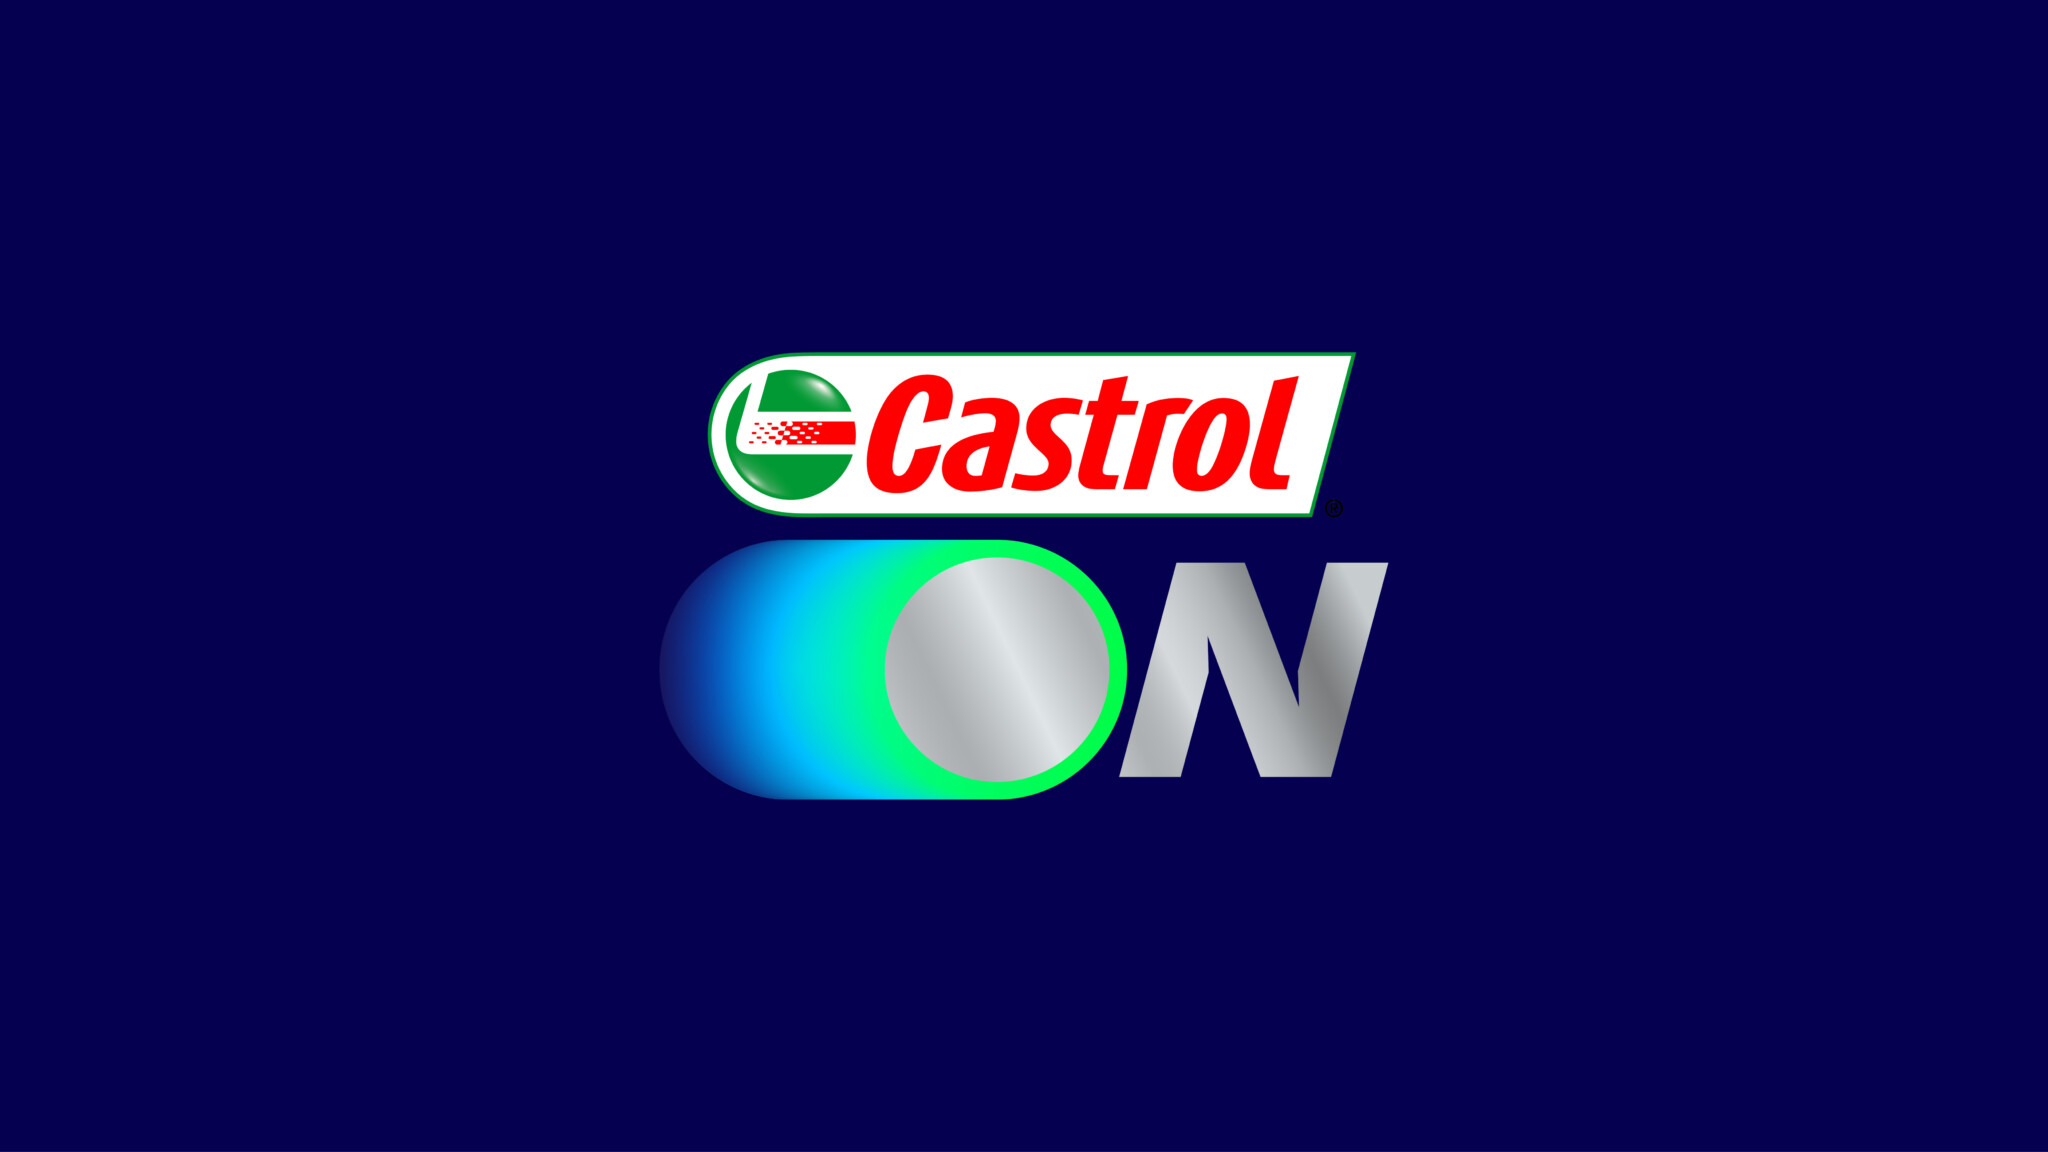 CASTROL_ON_03_LOGO image